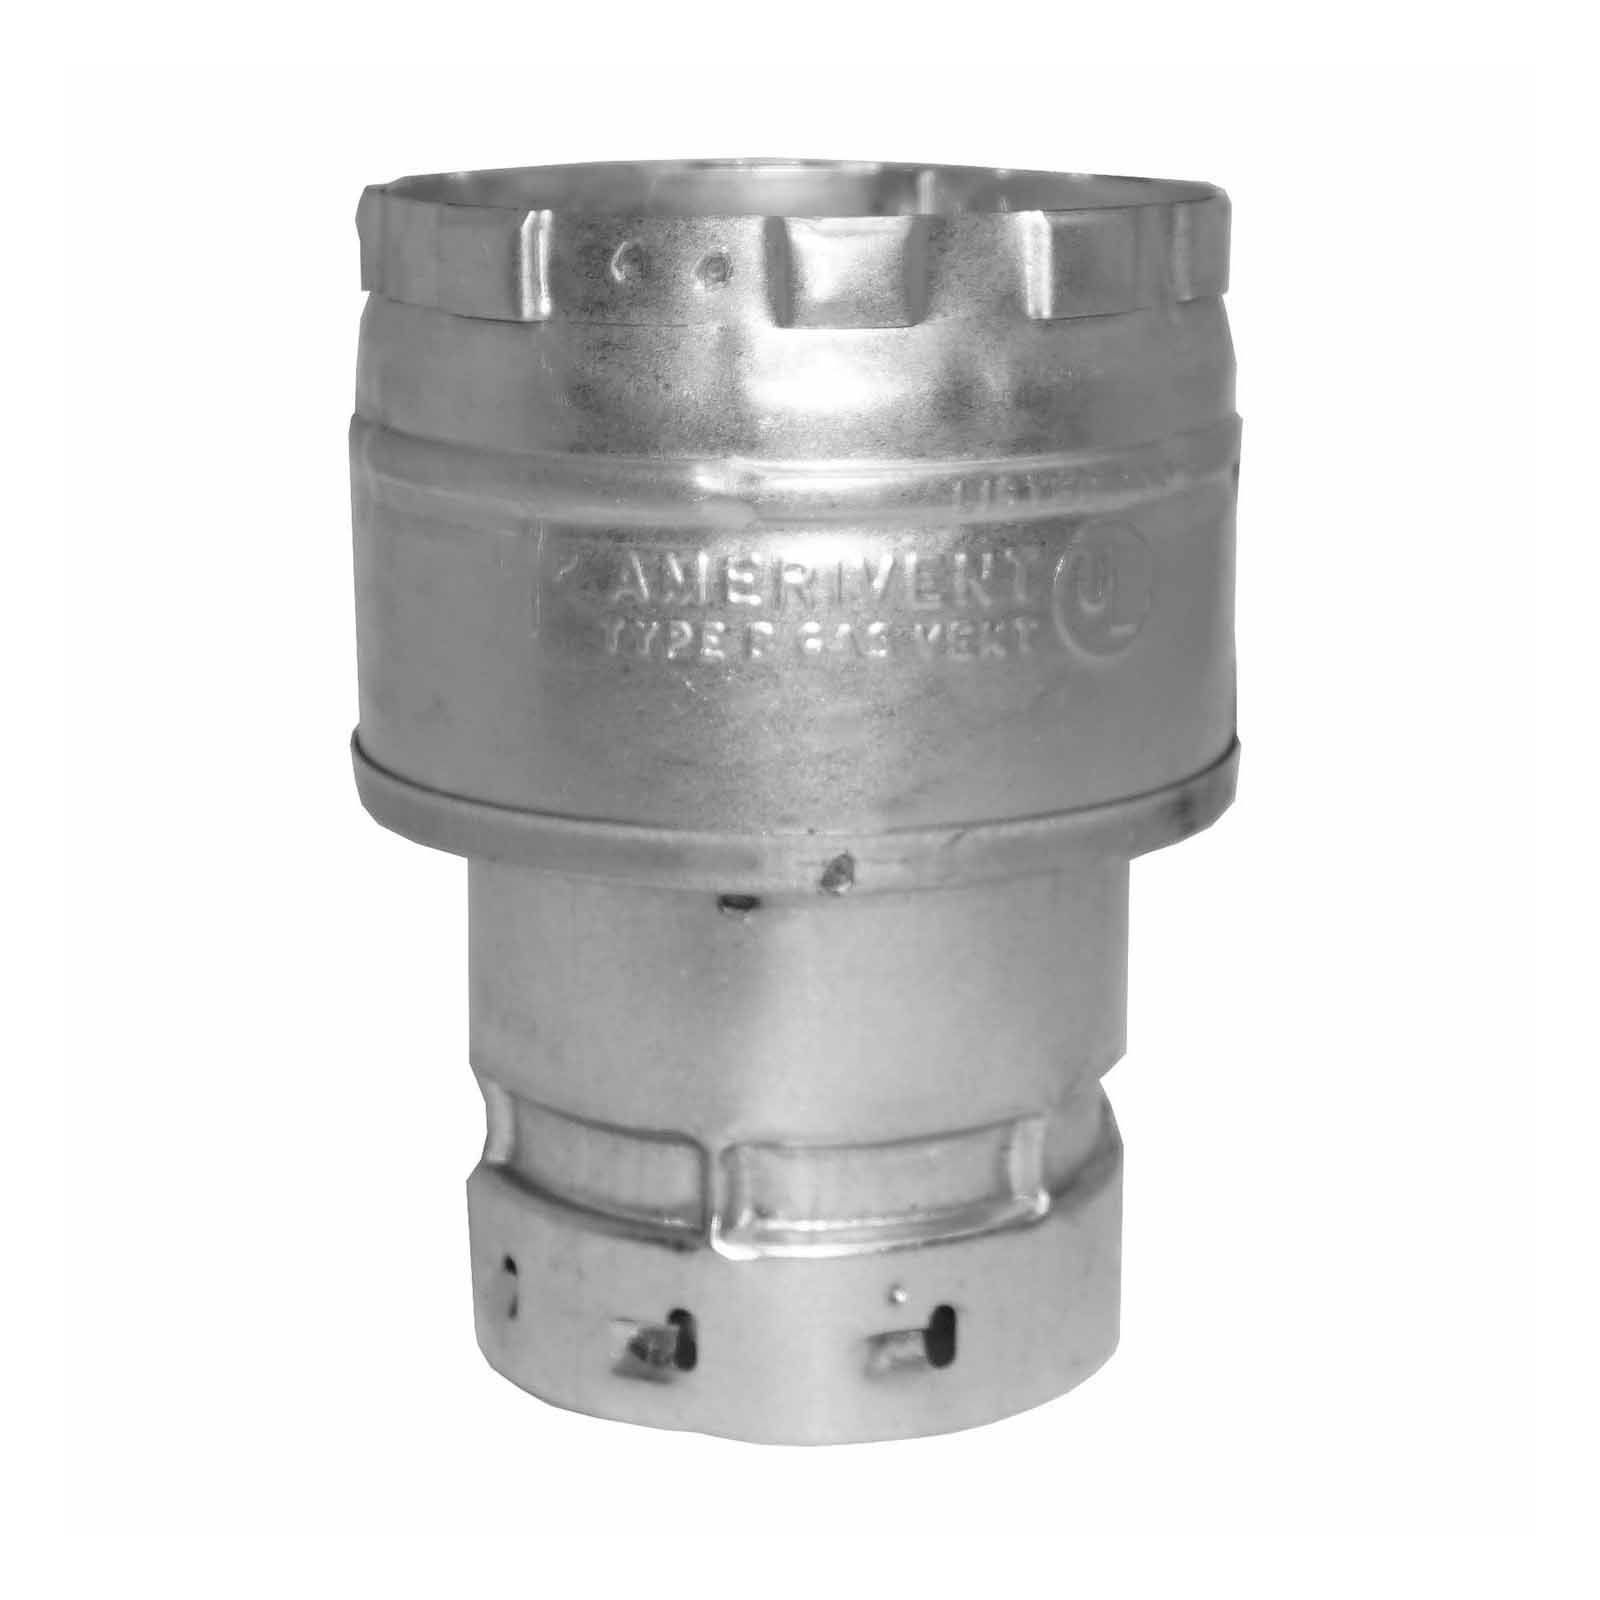 "AmeriVent 3EIX4 - B-Vent Increaser, 3"" To 4"""